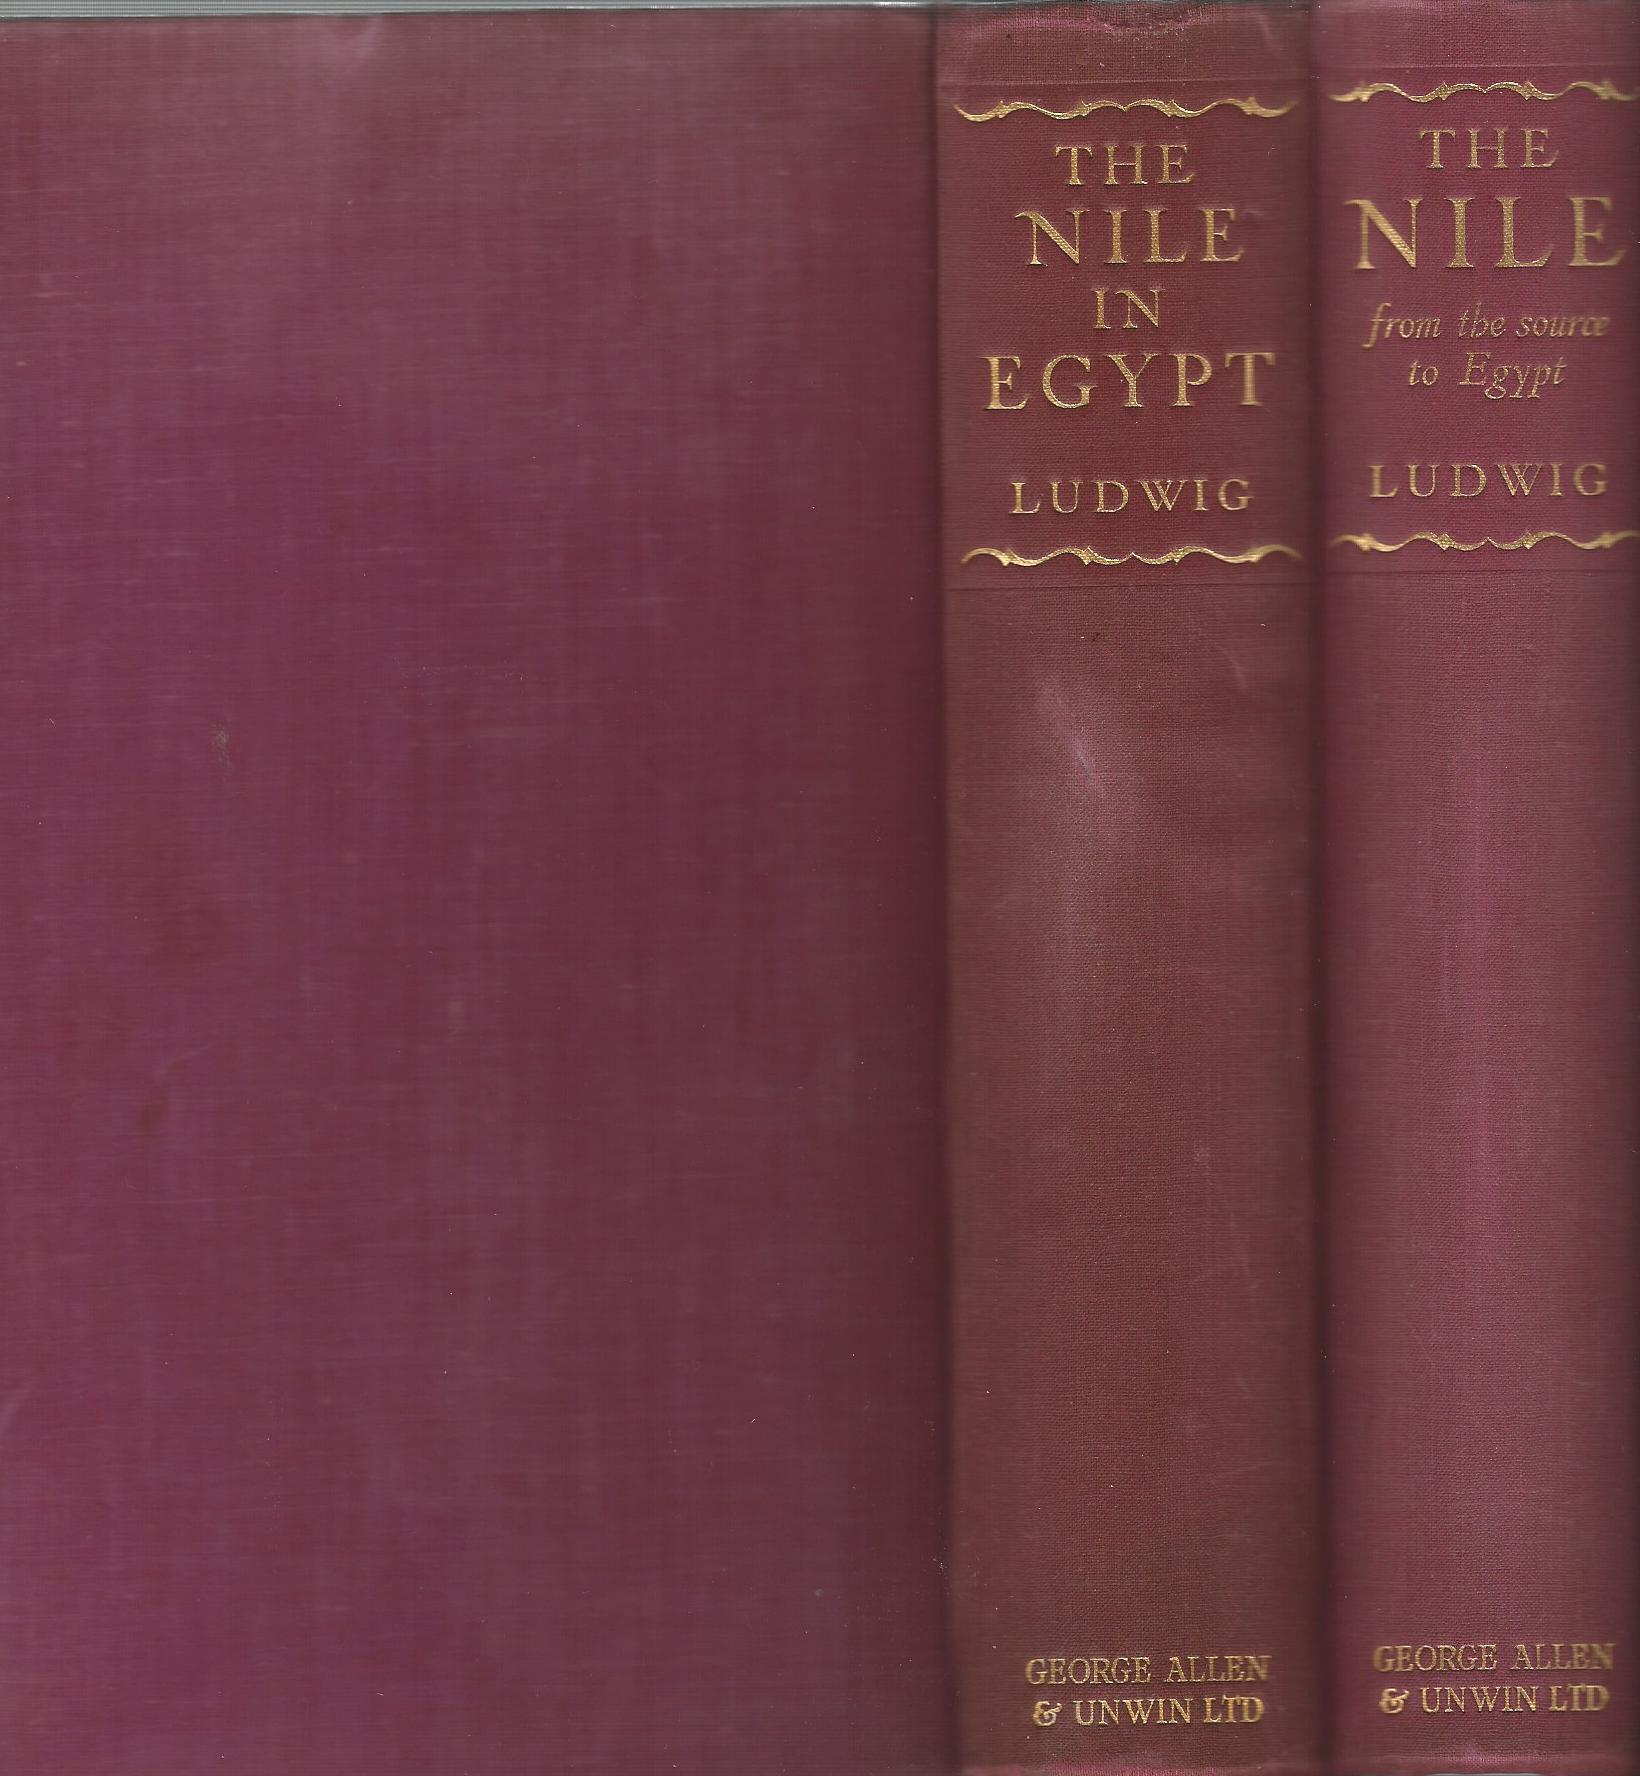 Image for The Nile from the Source to Egypt & The Nile in Egypt. (2 Volumes Complete)